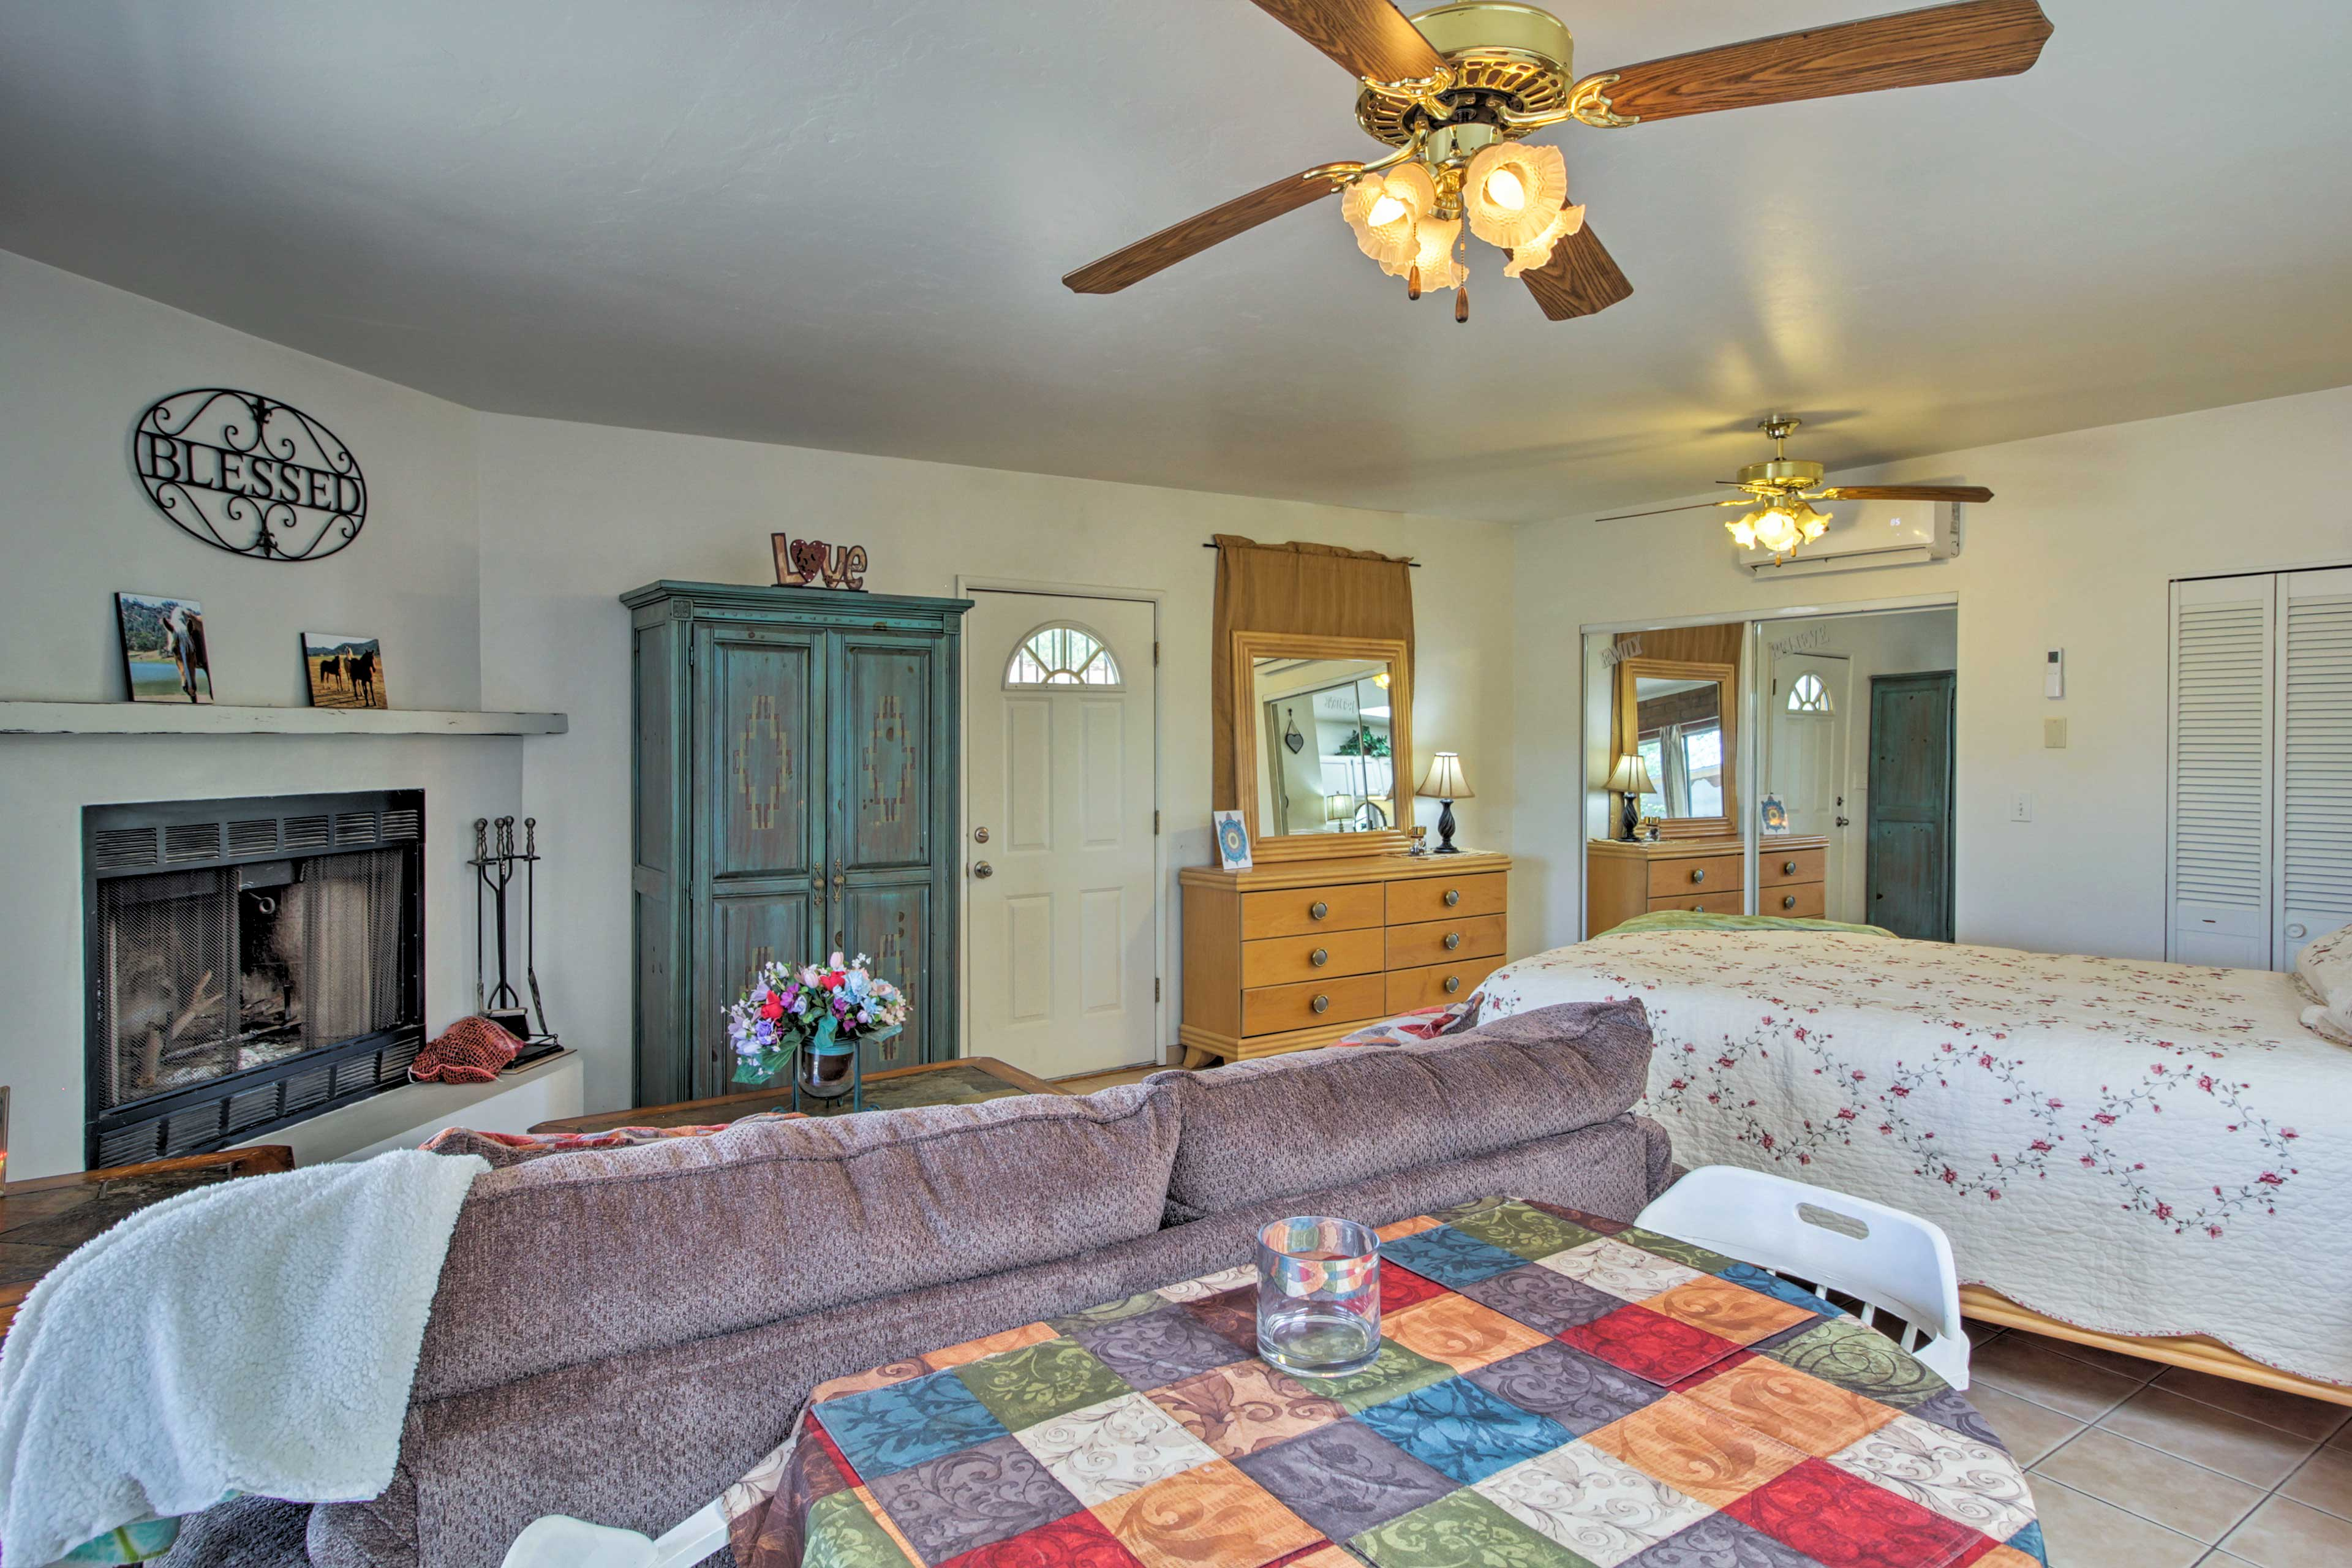 Ceiling fans and central AC keep you cool on hot afternoons.